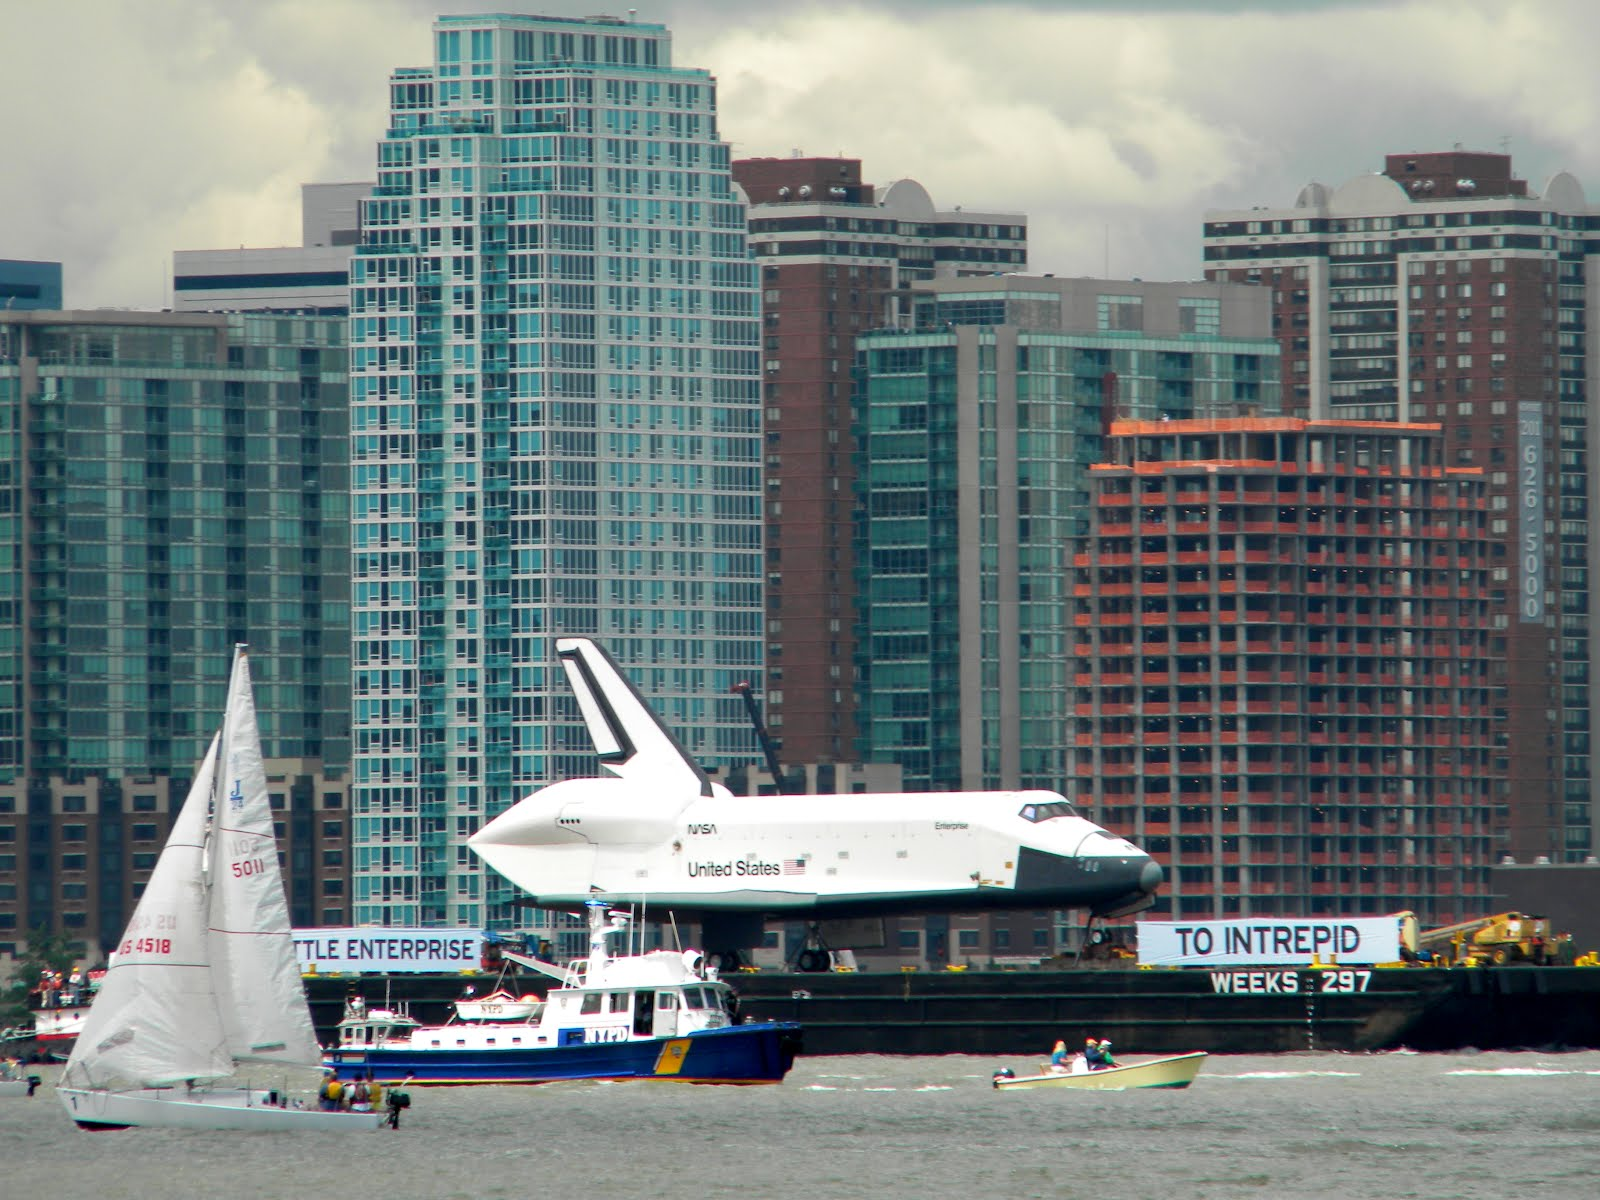 Space Shuttle Enterprise on the Hudson River